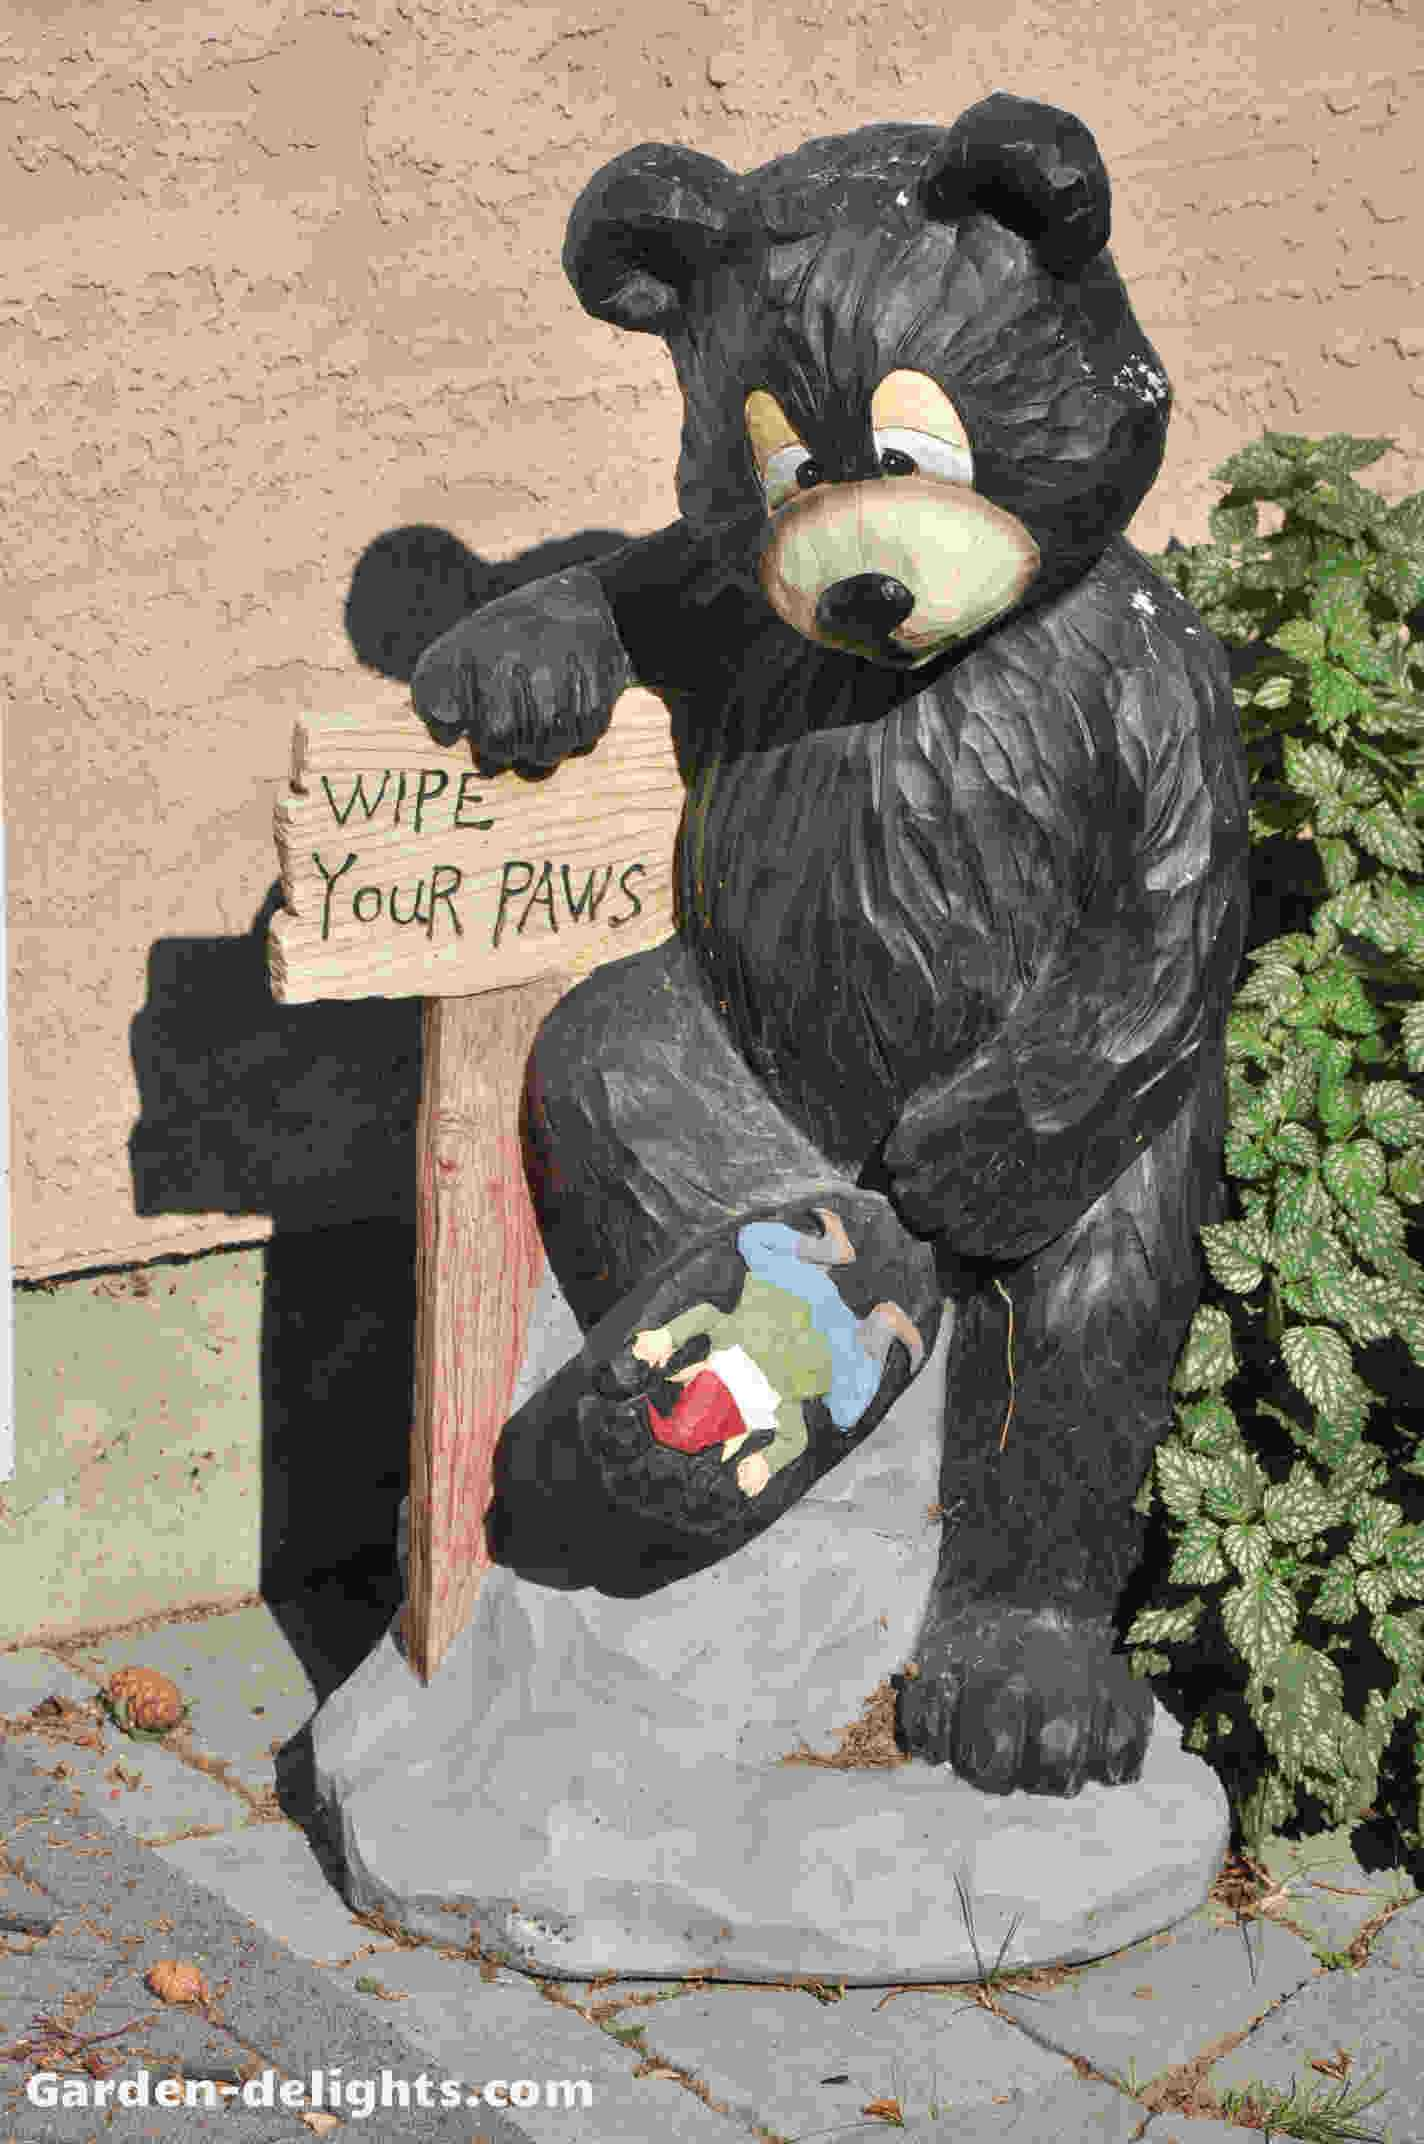 Bear Garden Statue With One Foot Up With Garden Gnome Underneath His Foot  With A Sign